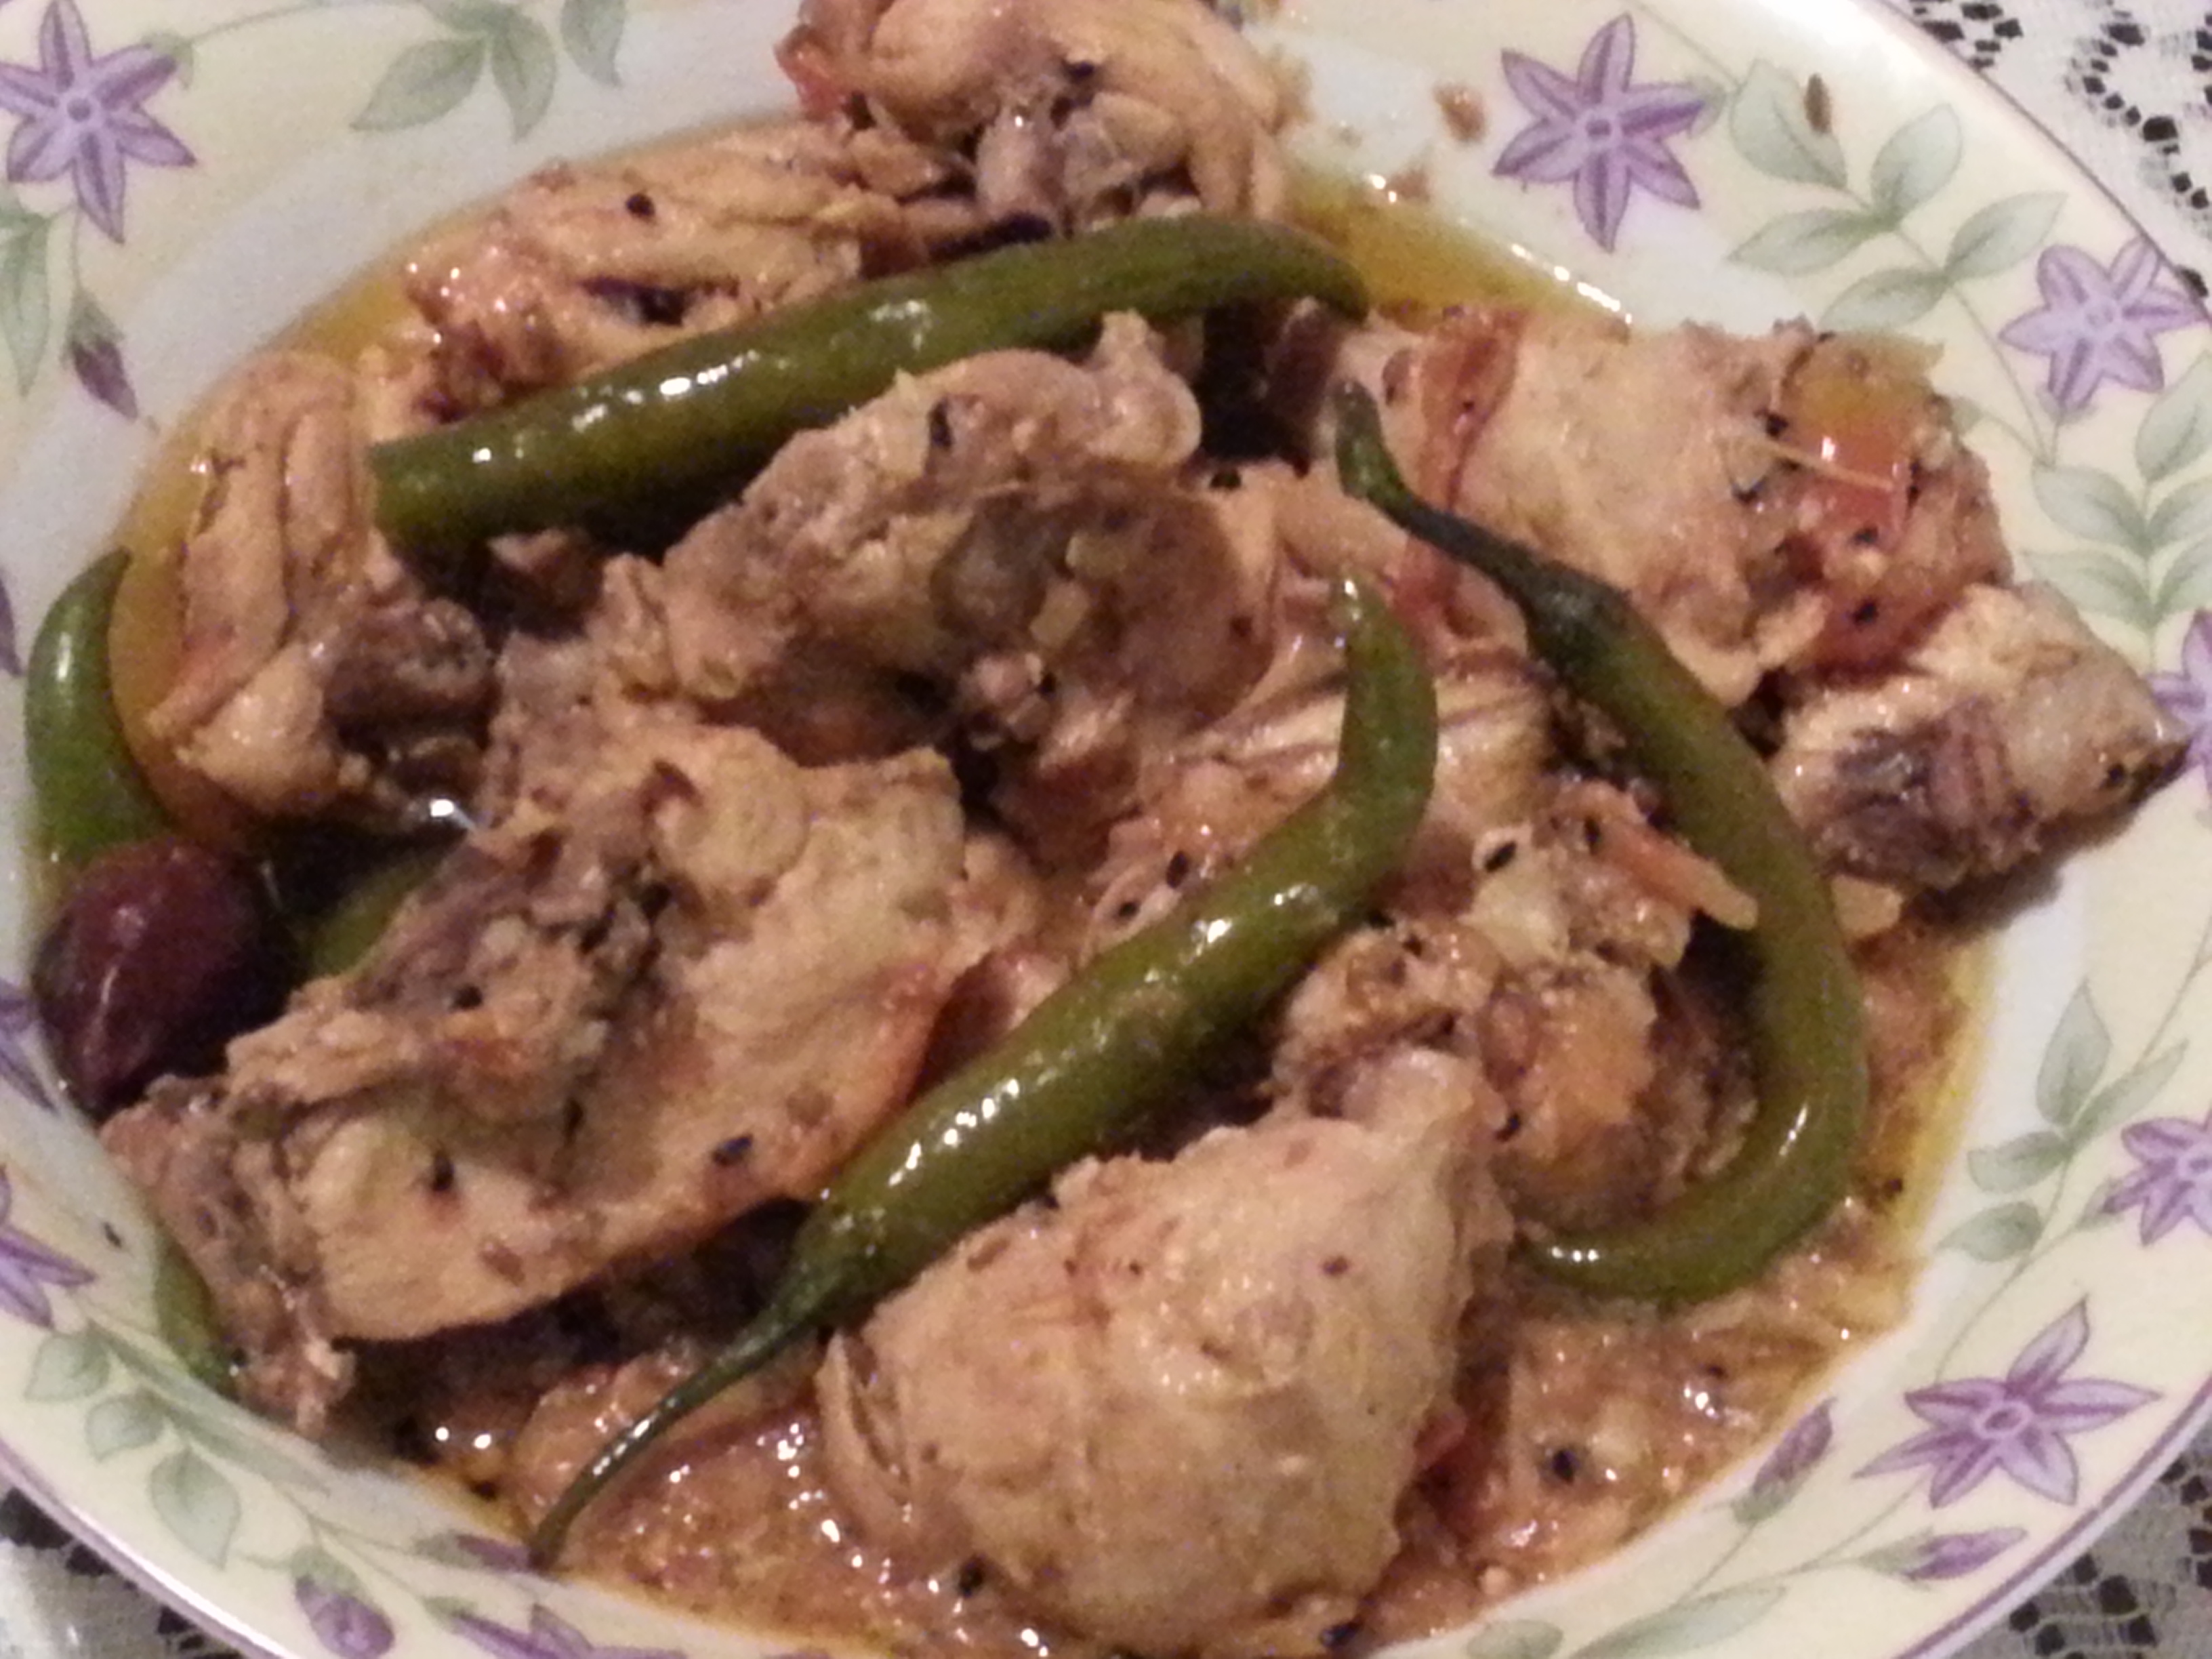 Recipe achari chicken karahi by zubeida tariq lets share knowledge recipe achari chicken karahi by zubeida tariq forumfinder Gallery